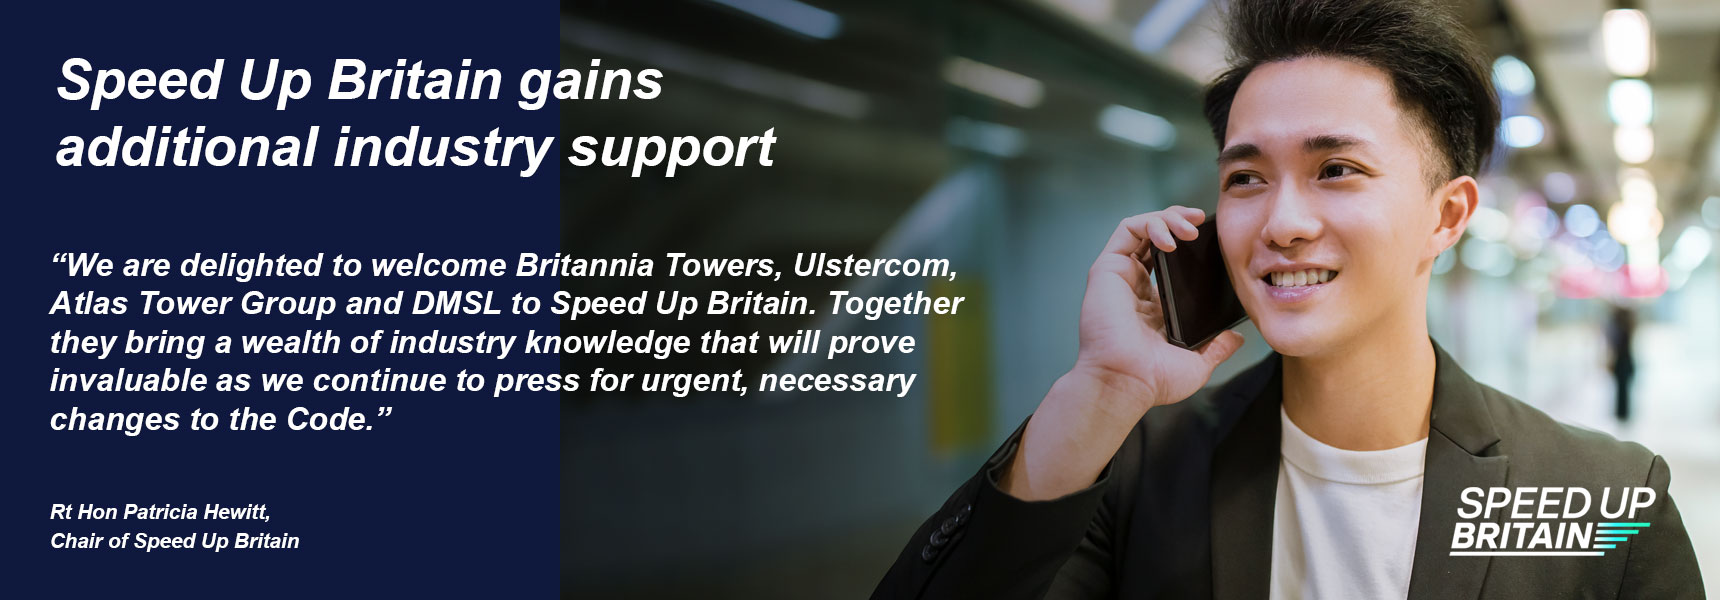 Speed Up Britain gains additional industry support